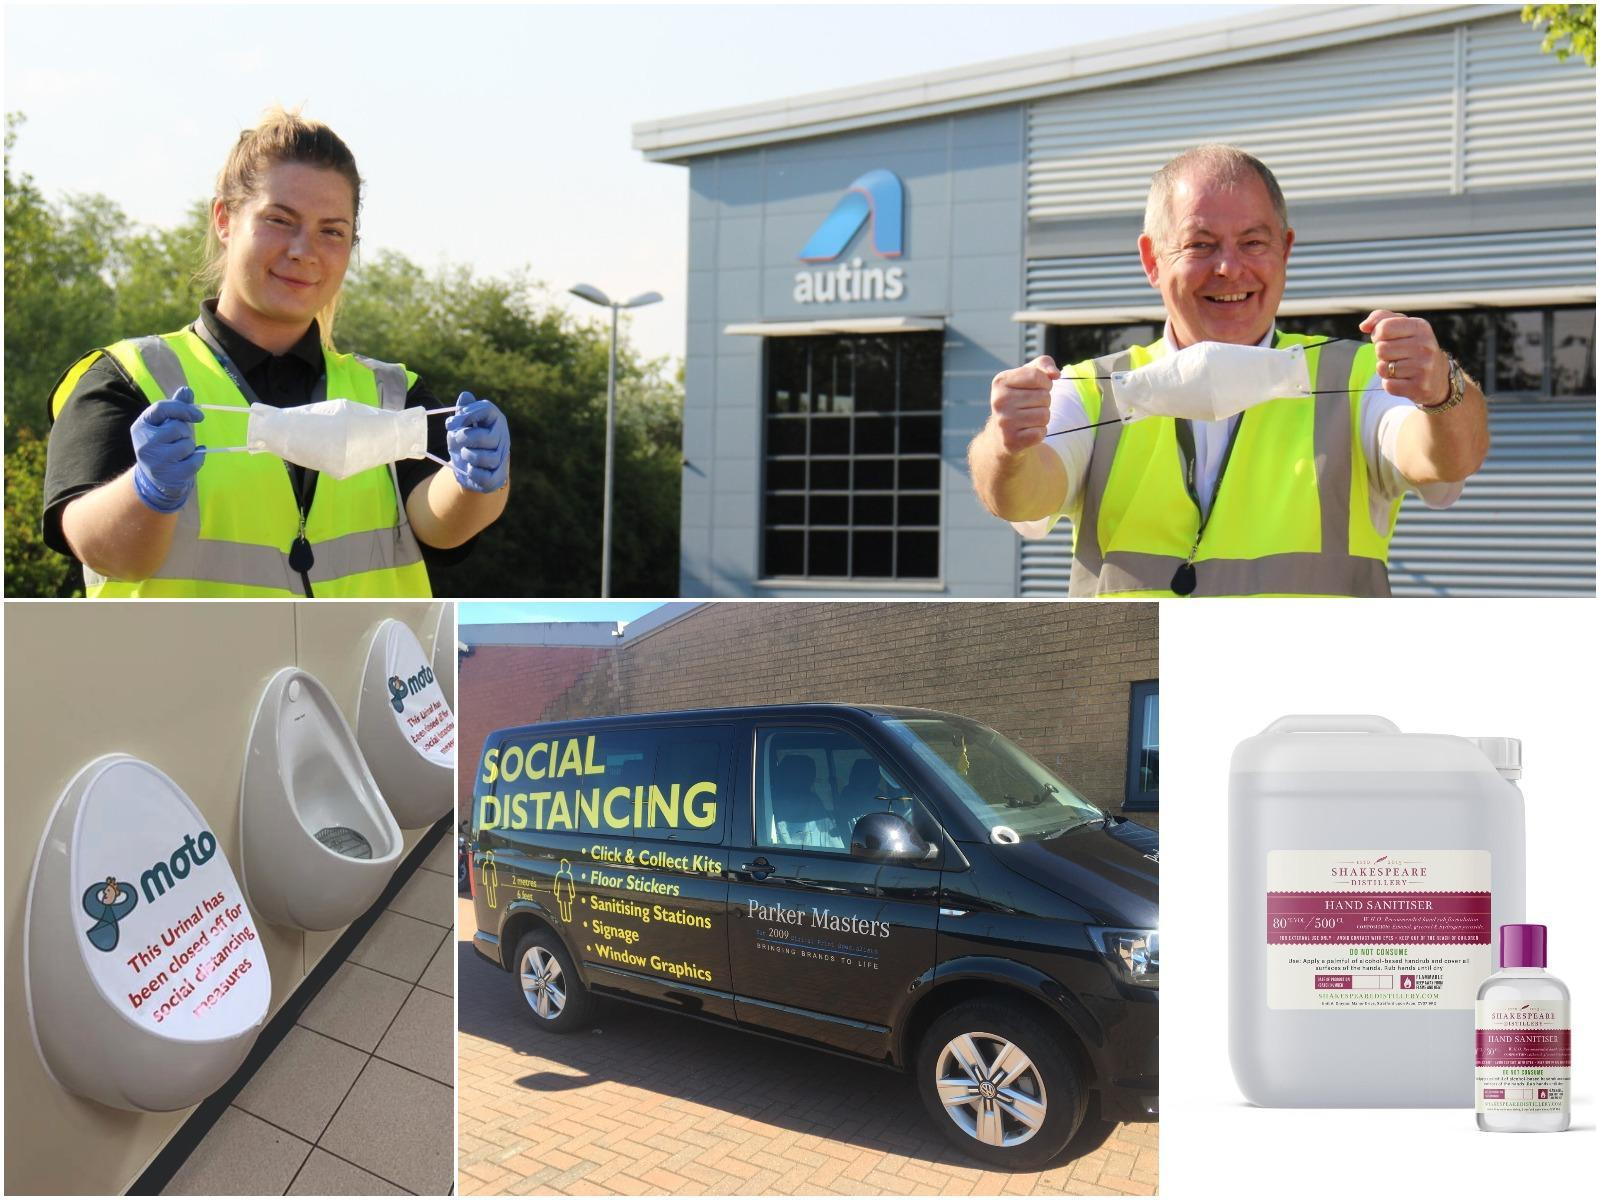 Warwickshire Businesses Encouraged To Source Their Ppe From Local Suppliers photo